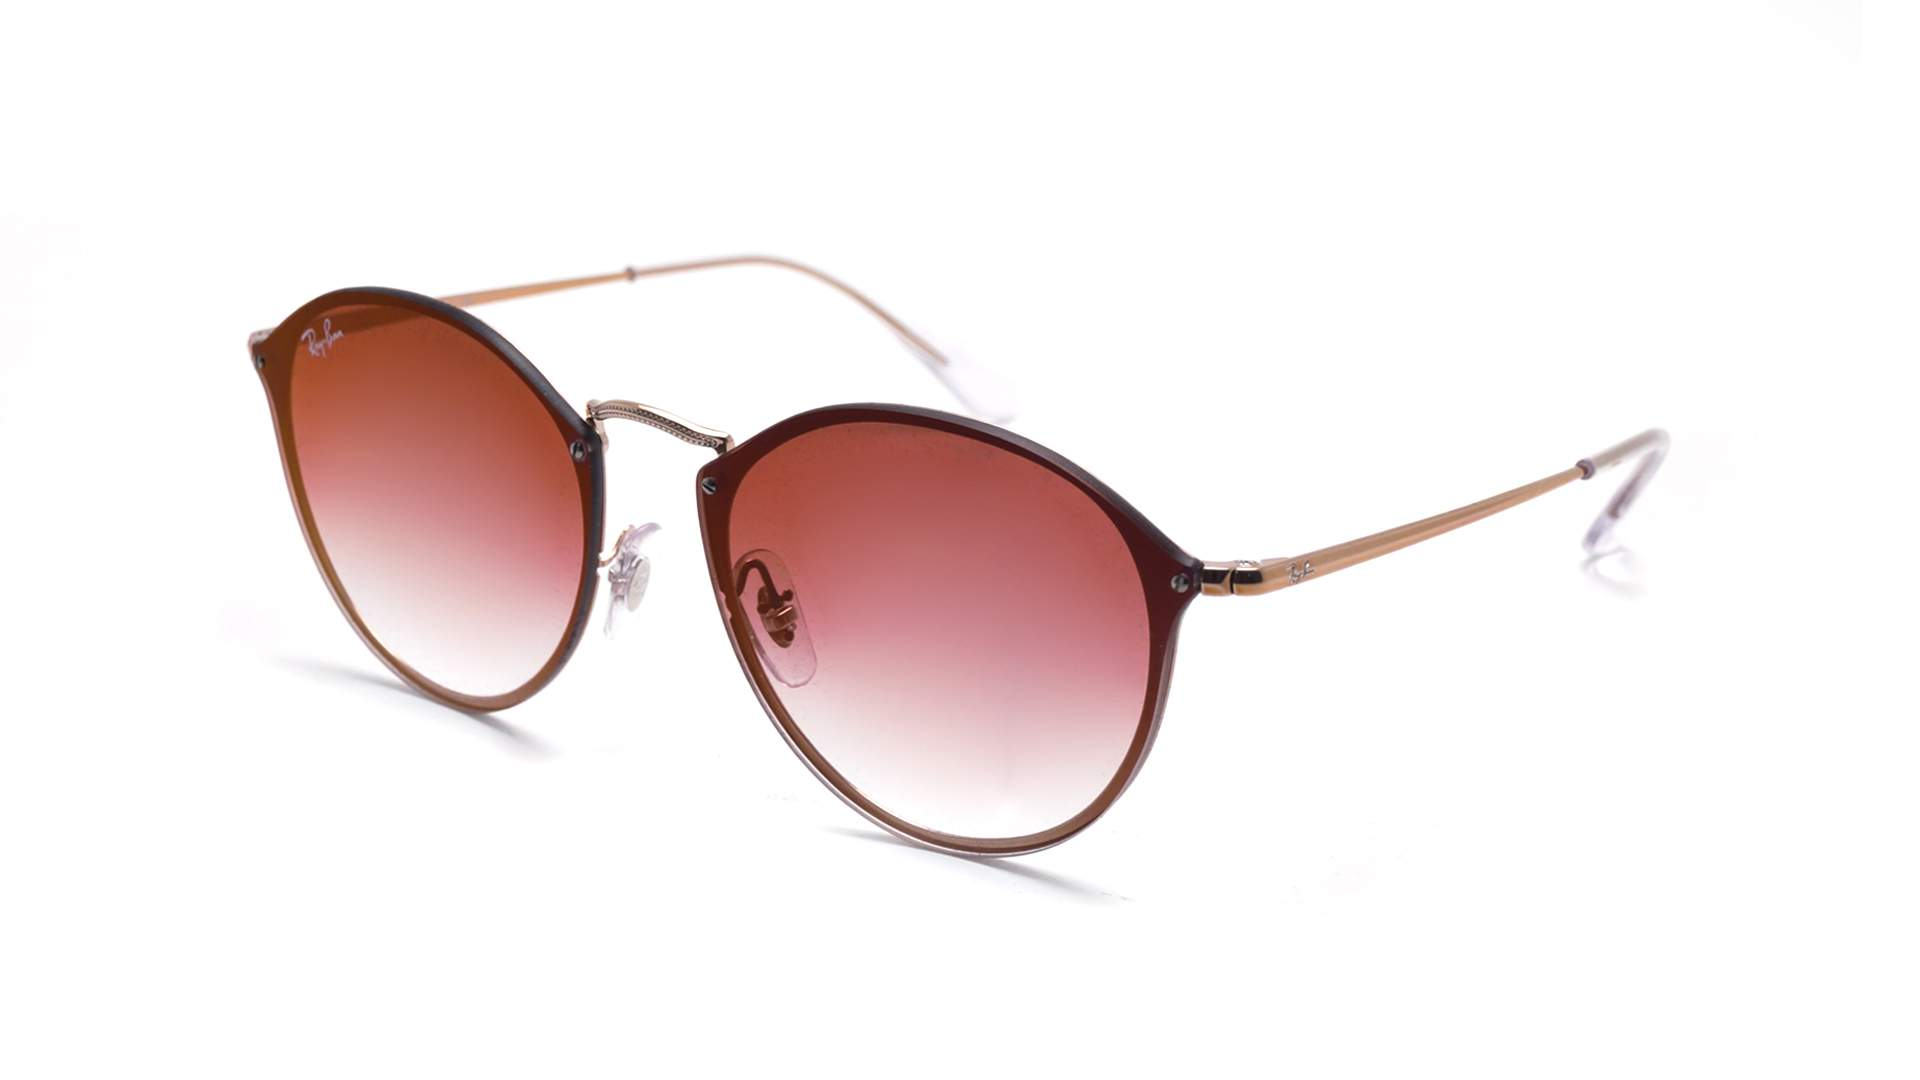 631d1c5bcefe Sunglasses Ray-Ban Round Blaze Gold RB3574N 9035/V0 59-14 Large Gradient  Mirror